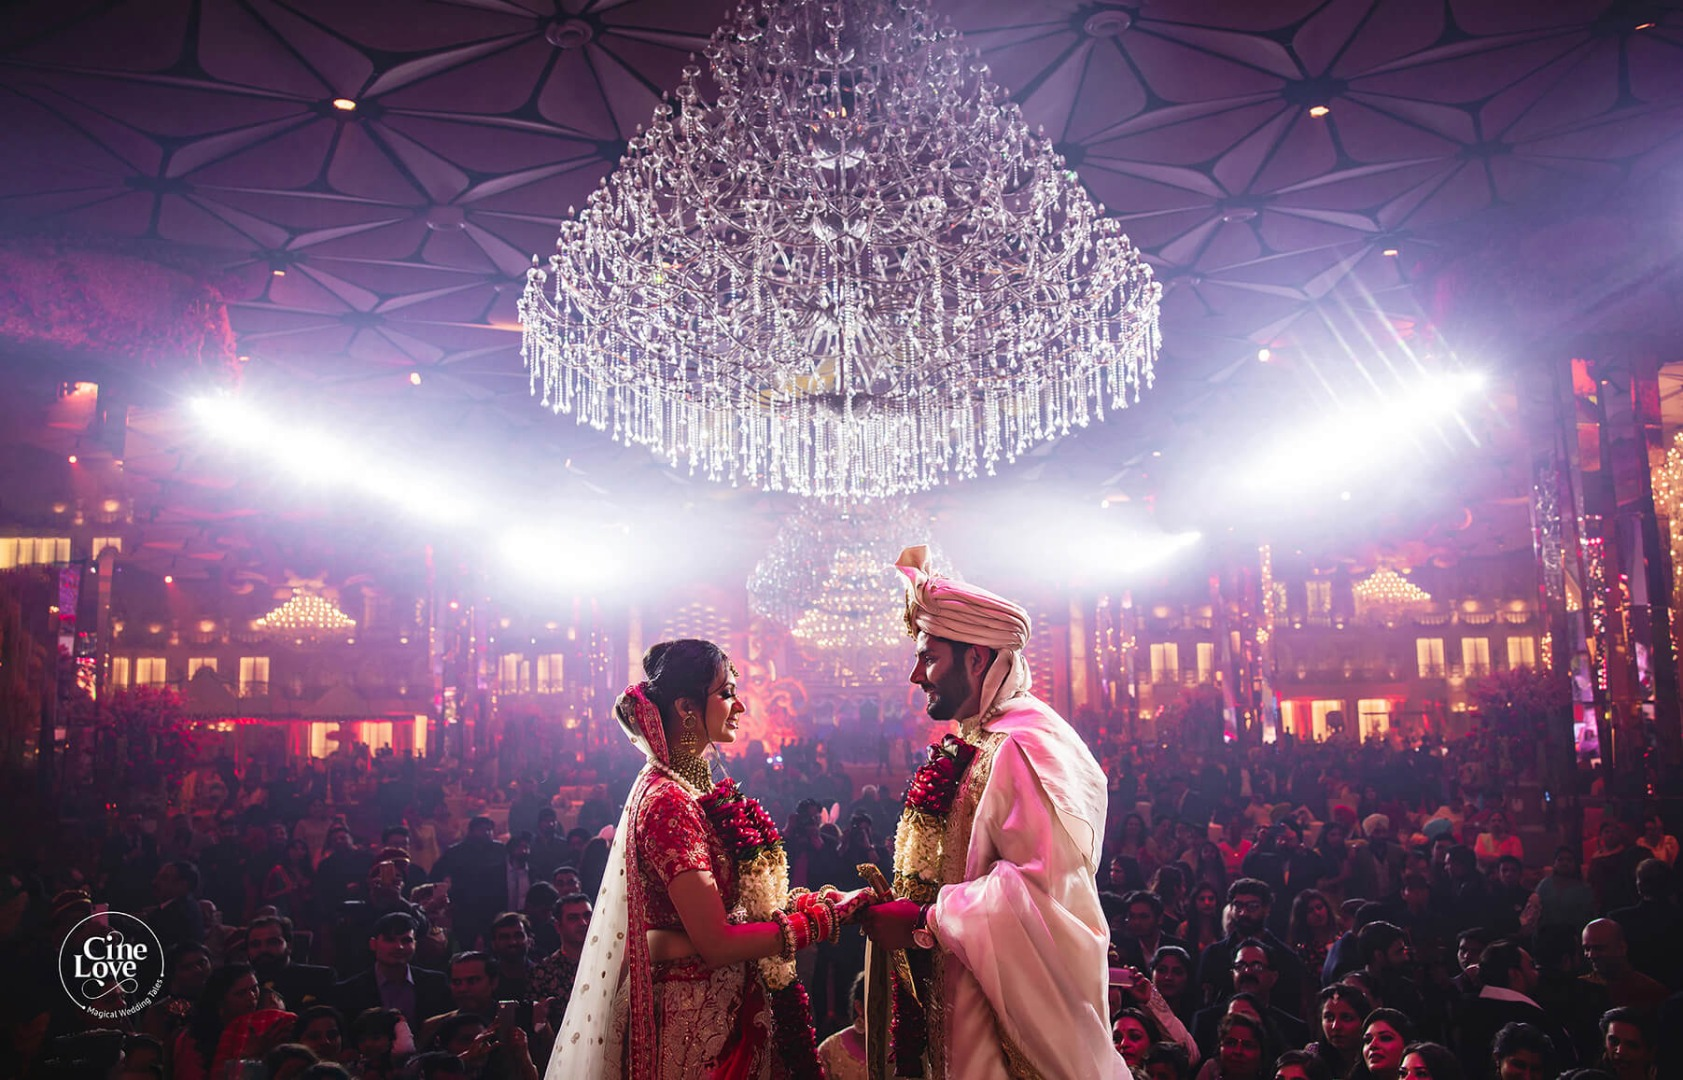 Bride & Groom Hand in Hand on Wedding Stage